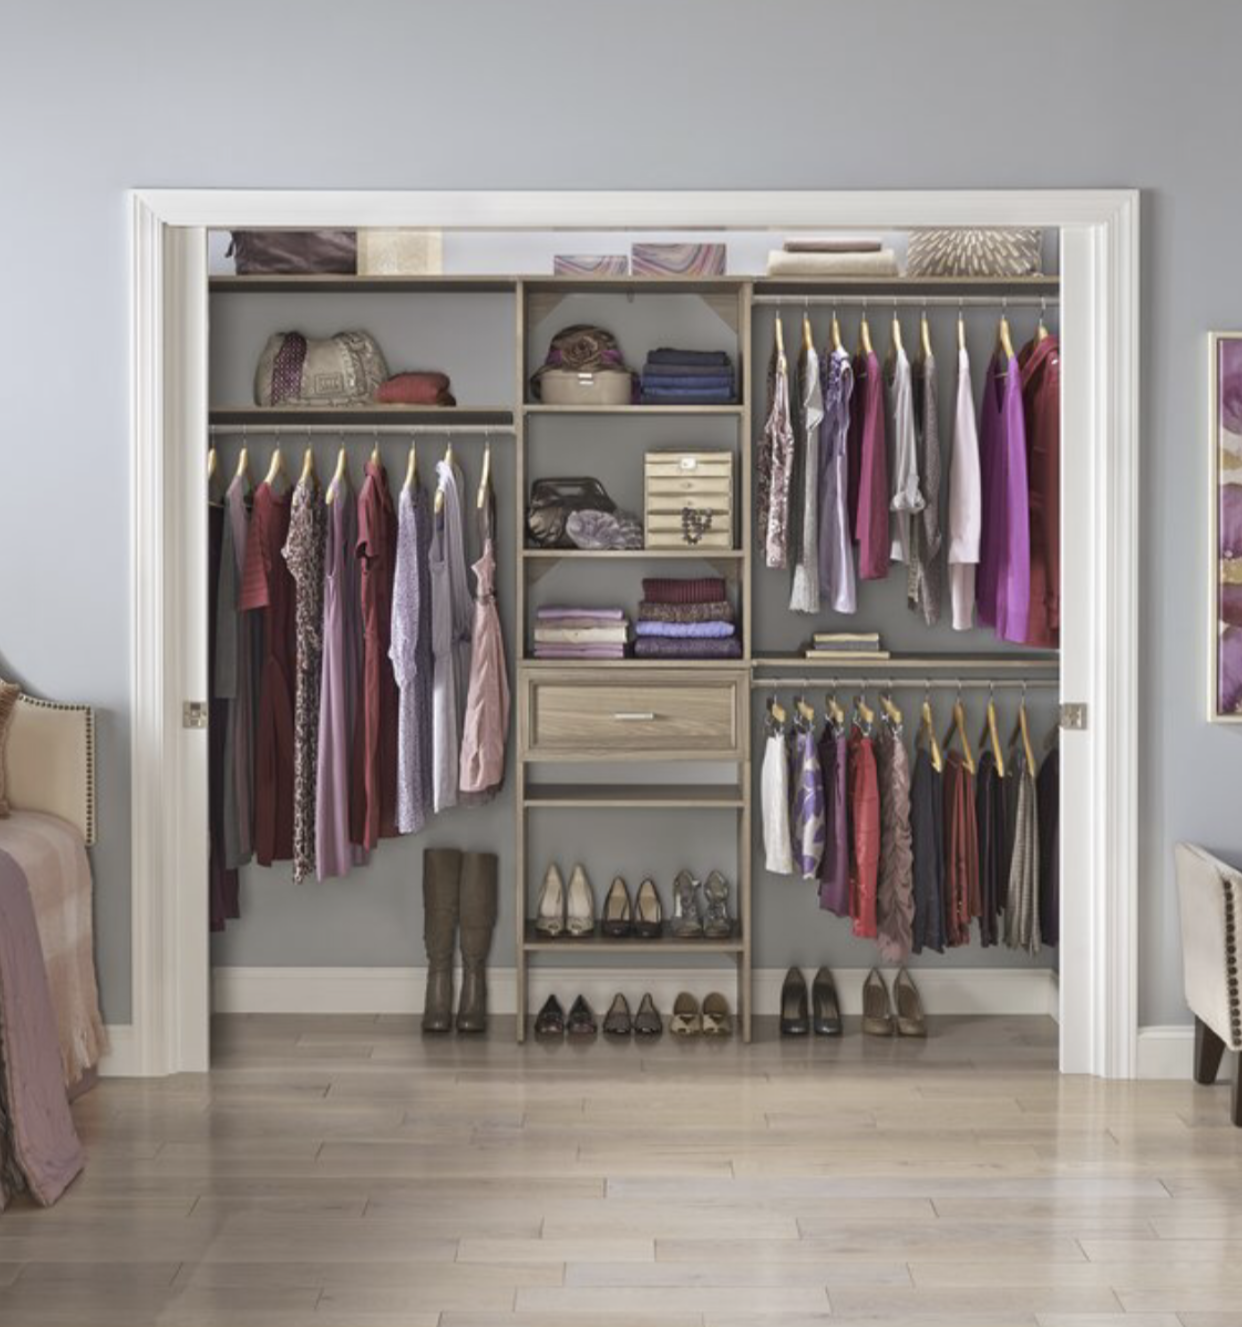 These Examples Are Making Use Of All Of The Closet Space, Floor To Ceiling.  If You Want Me To Take A Look At Your Closet Space, I Could Come By After  ...